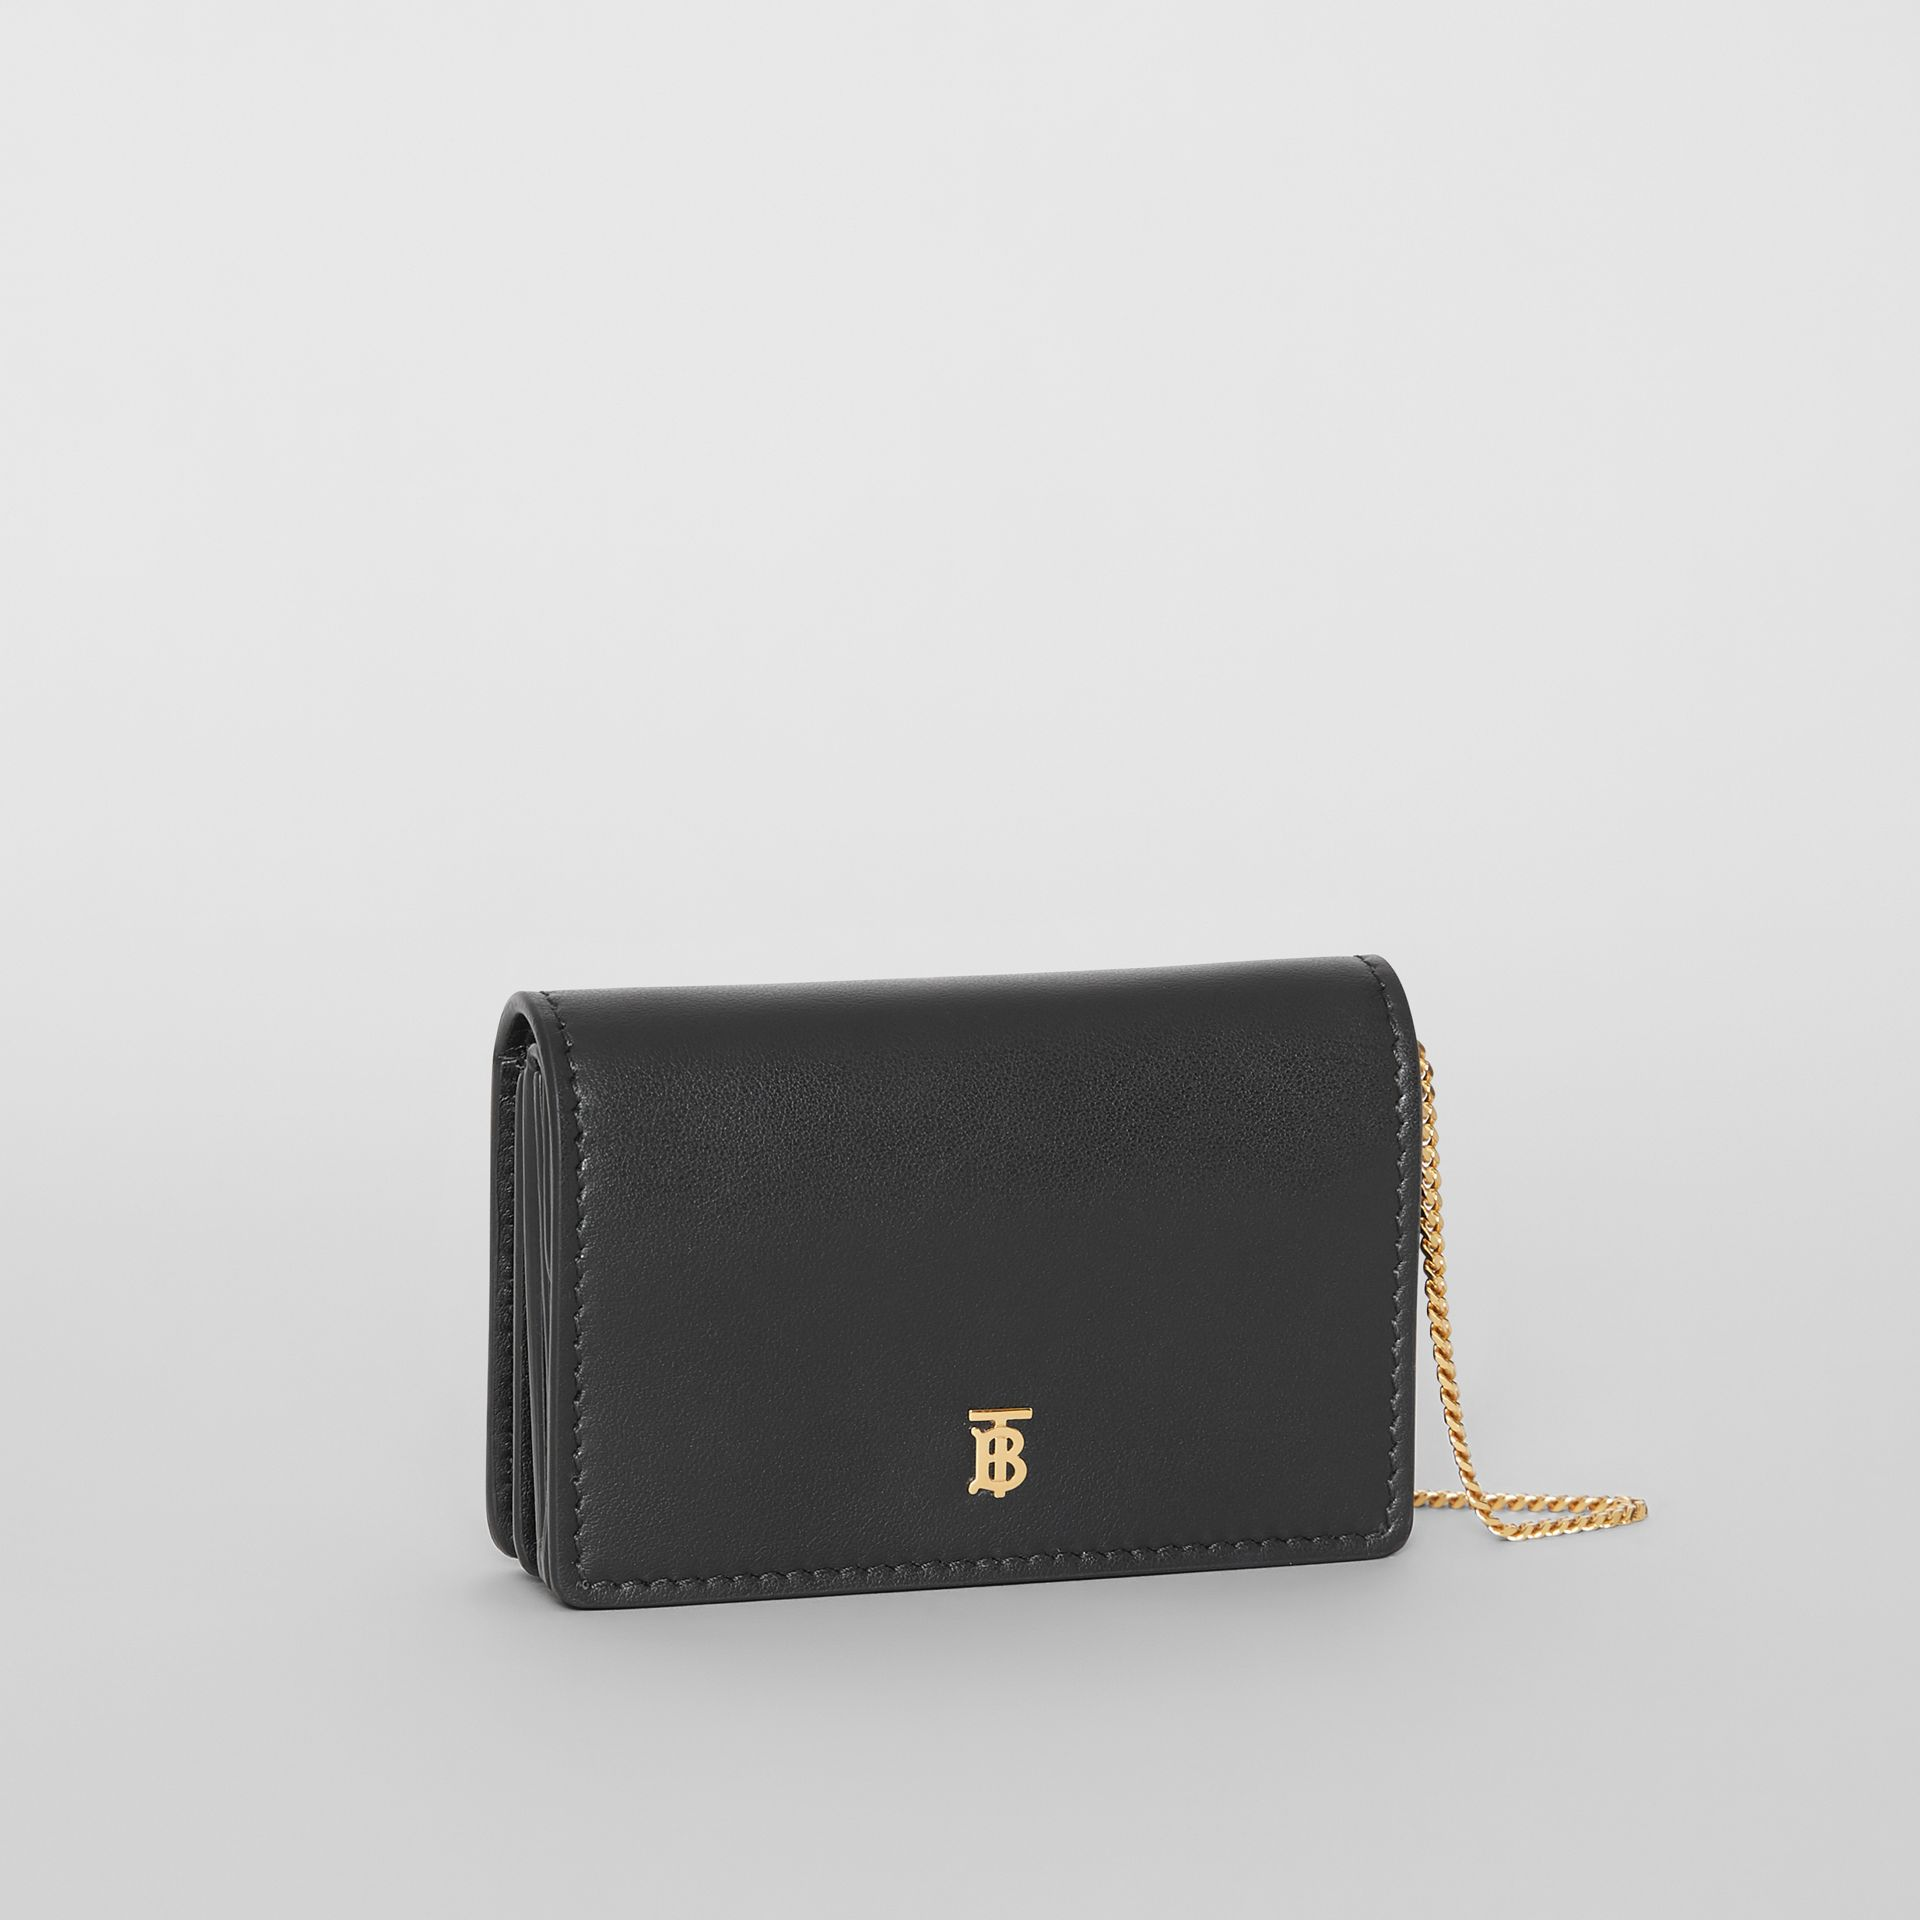 Leather Card Case with Detachable Strap in Black - Women | Burberry - gallery image 6